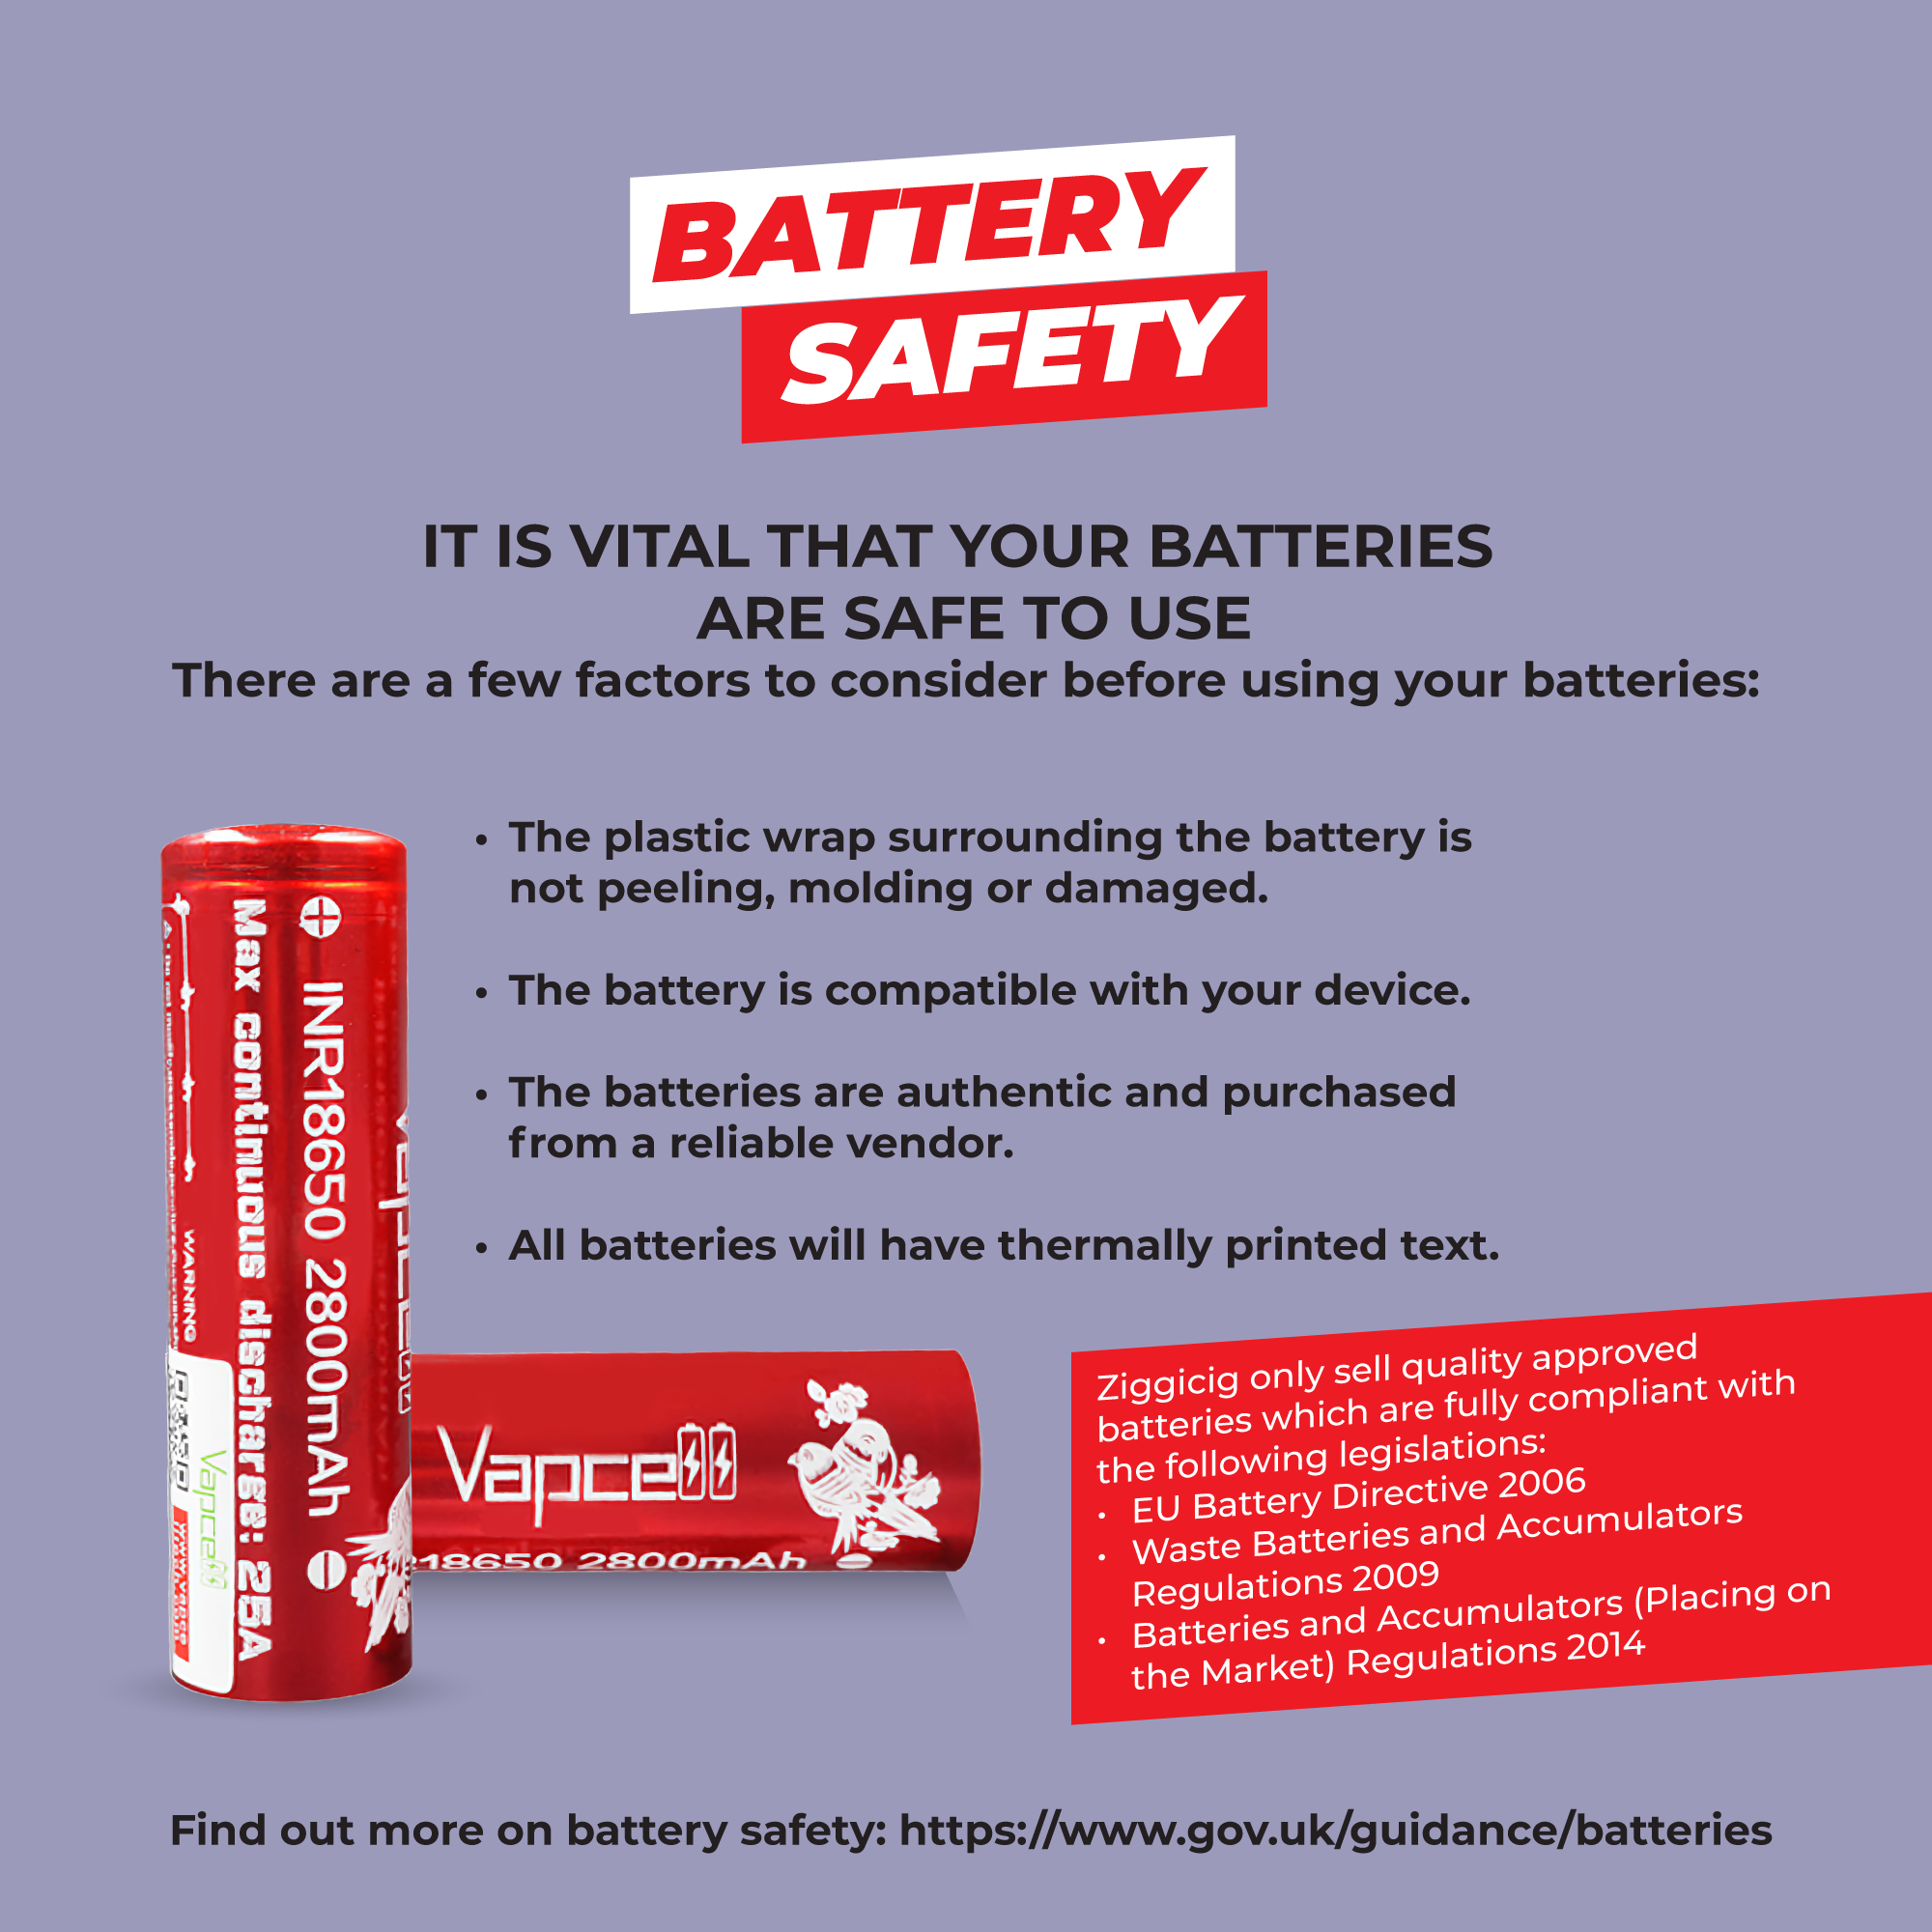 Battery Safety. It is vital that your batteries are safe to use